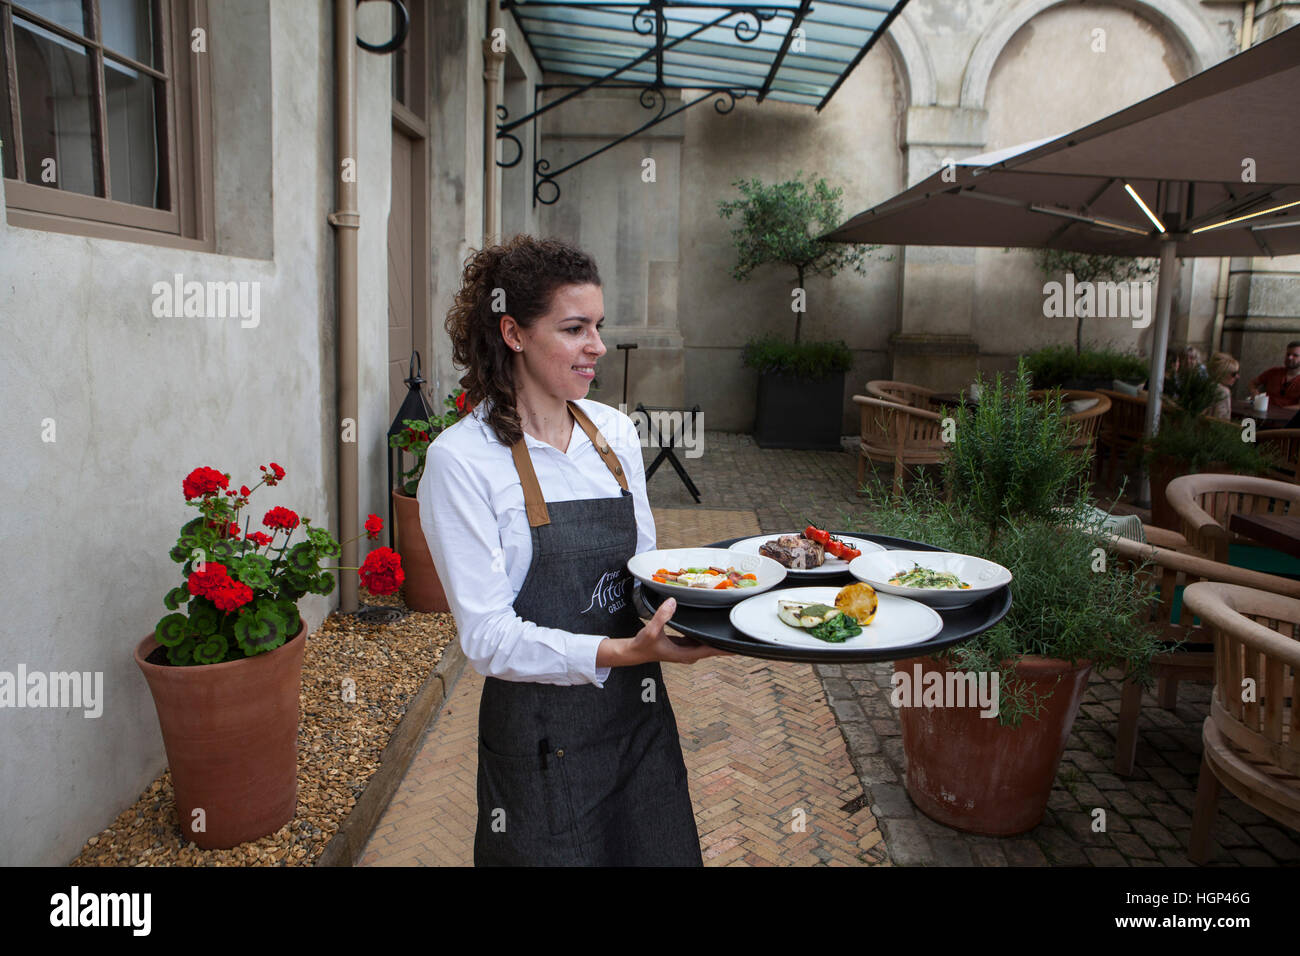 The Patio section of the Restaurant at The Astor Grill. - Stock Image